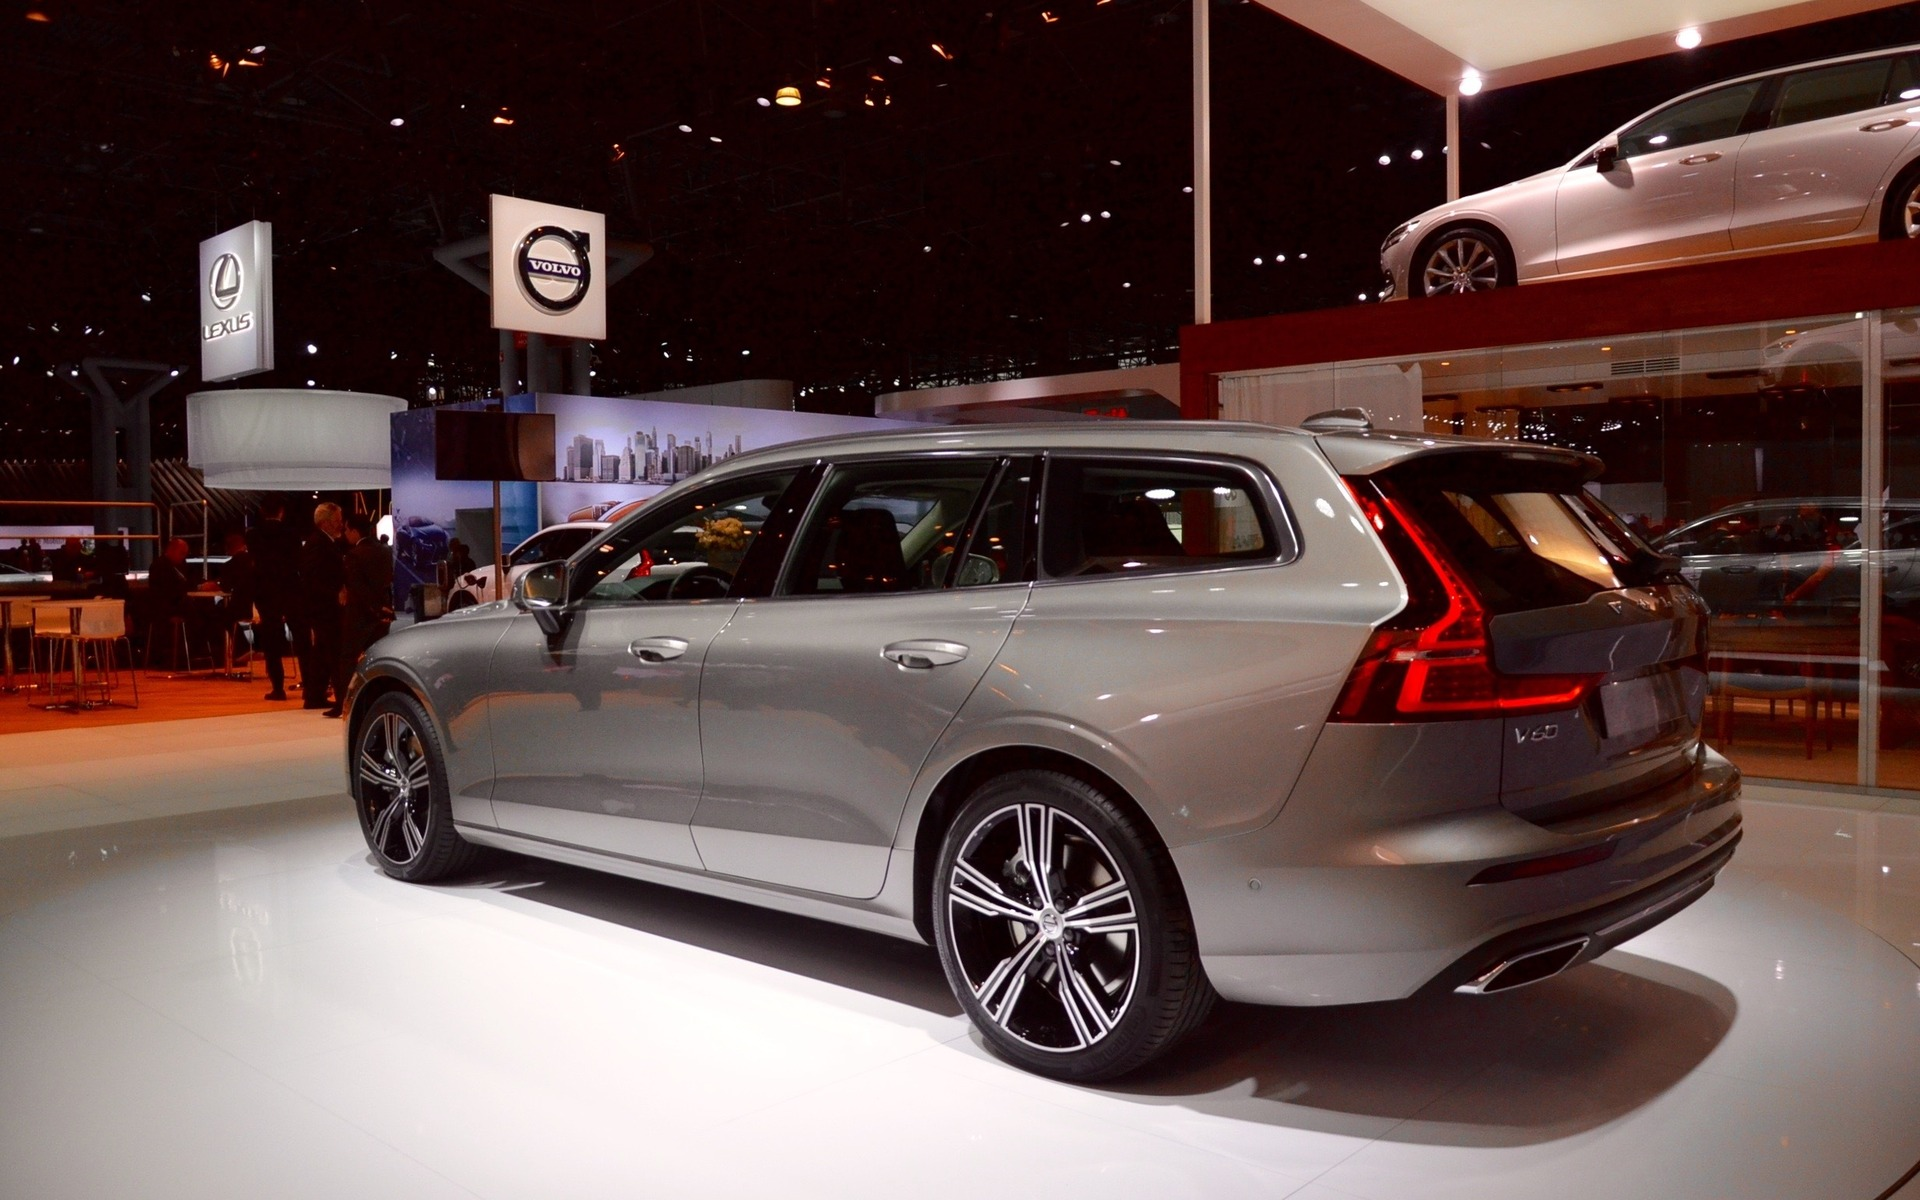 2019 volvo v60 and 2019 volvo xc40 inscription north american premieres in new york 4 20. Black Bedroom Furniture Sets. Home Design Ideas